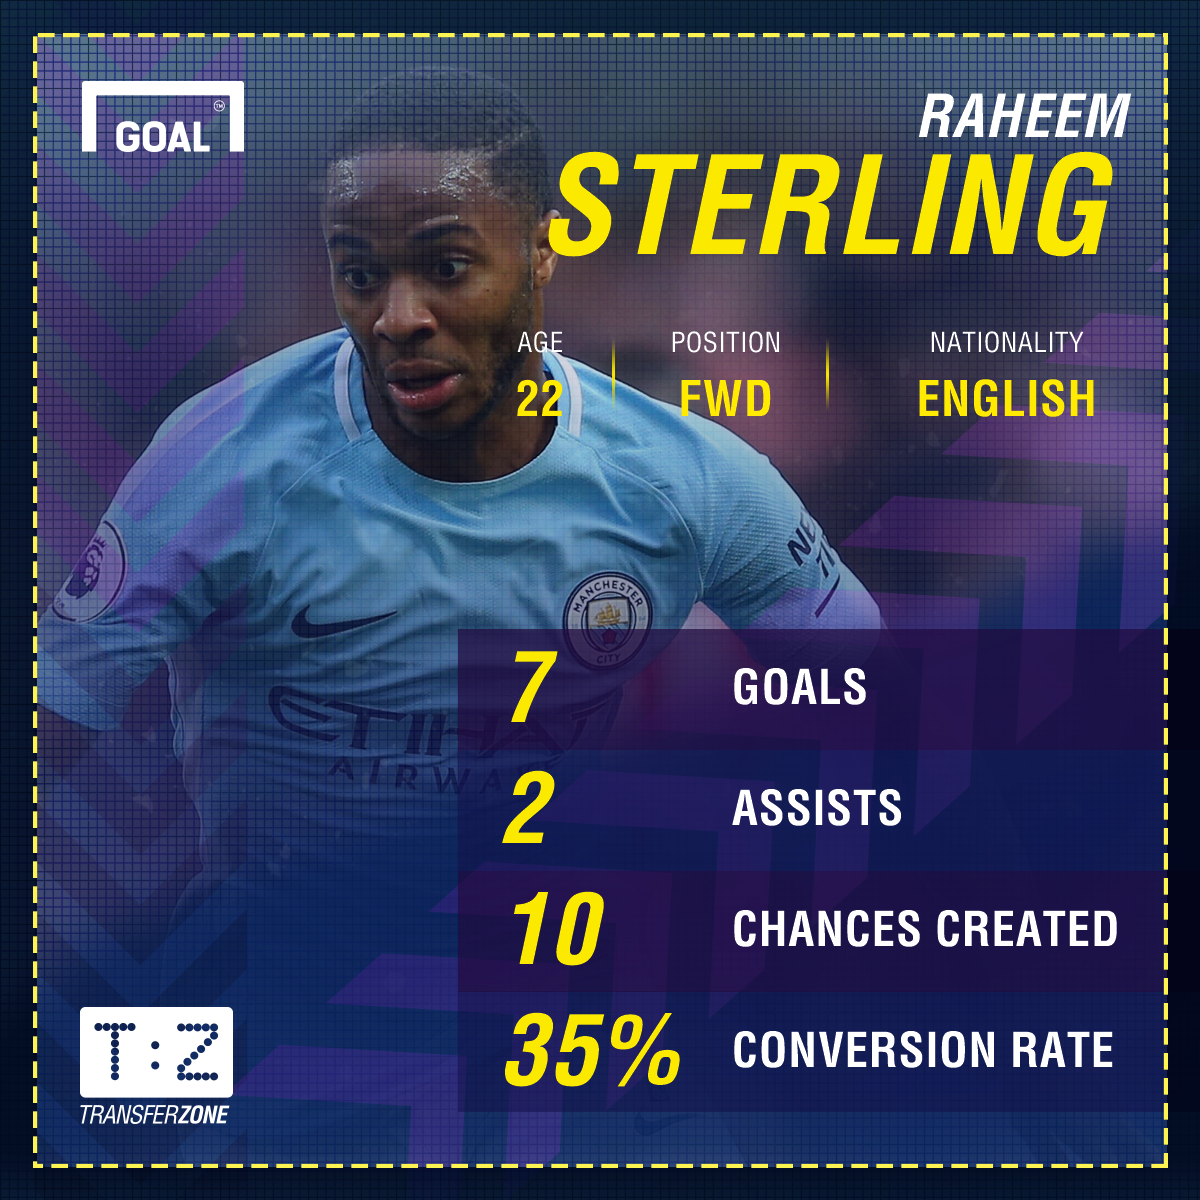 Raheem Sterling Manchester City stats October 14